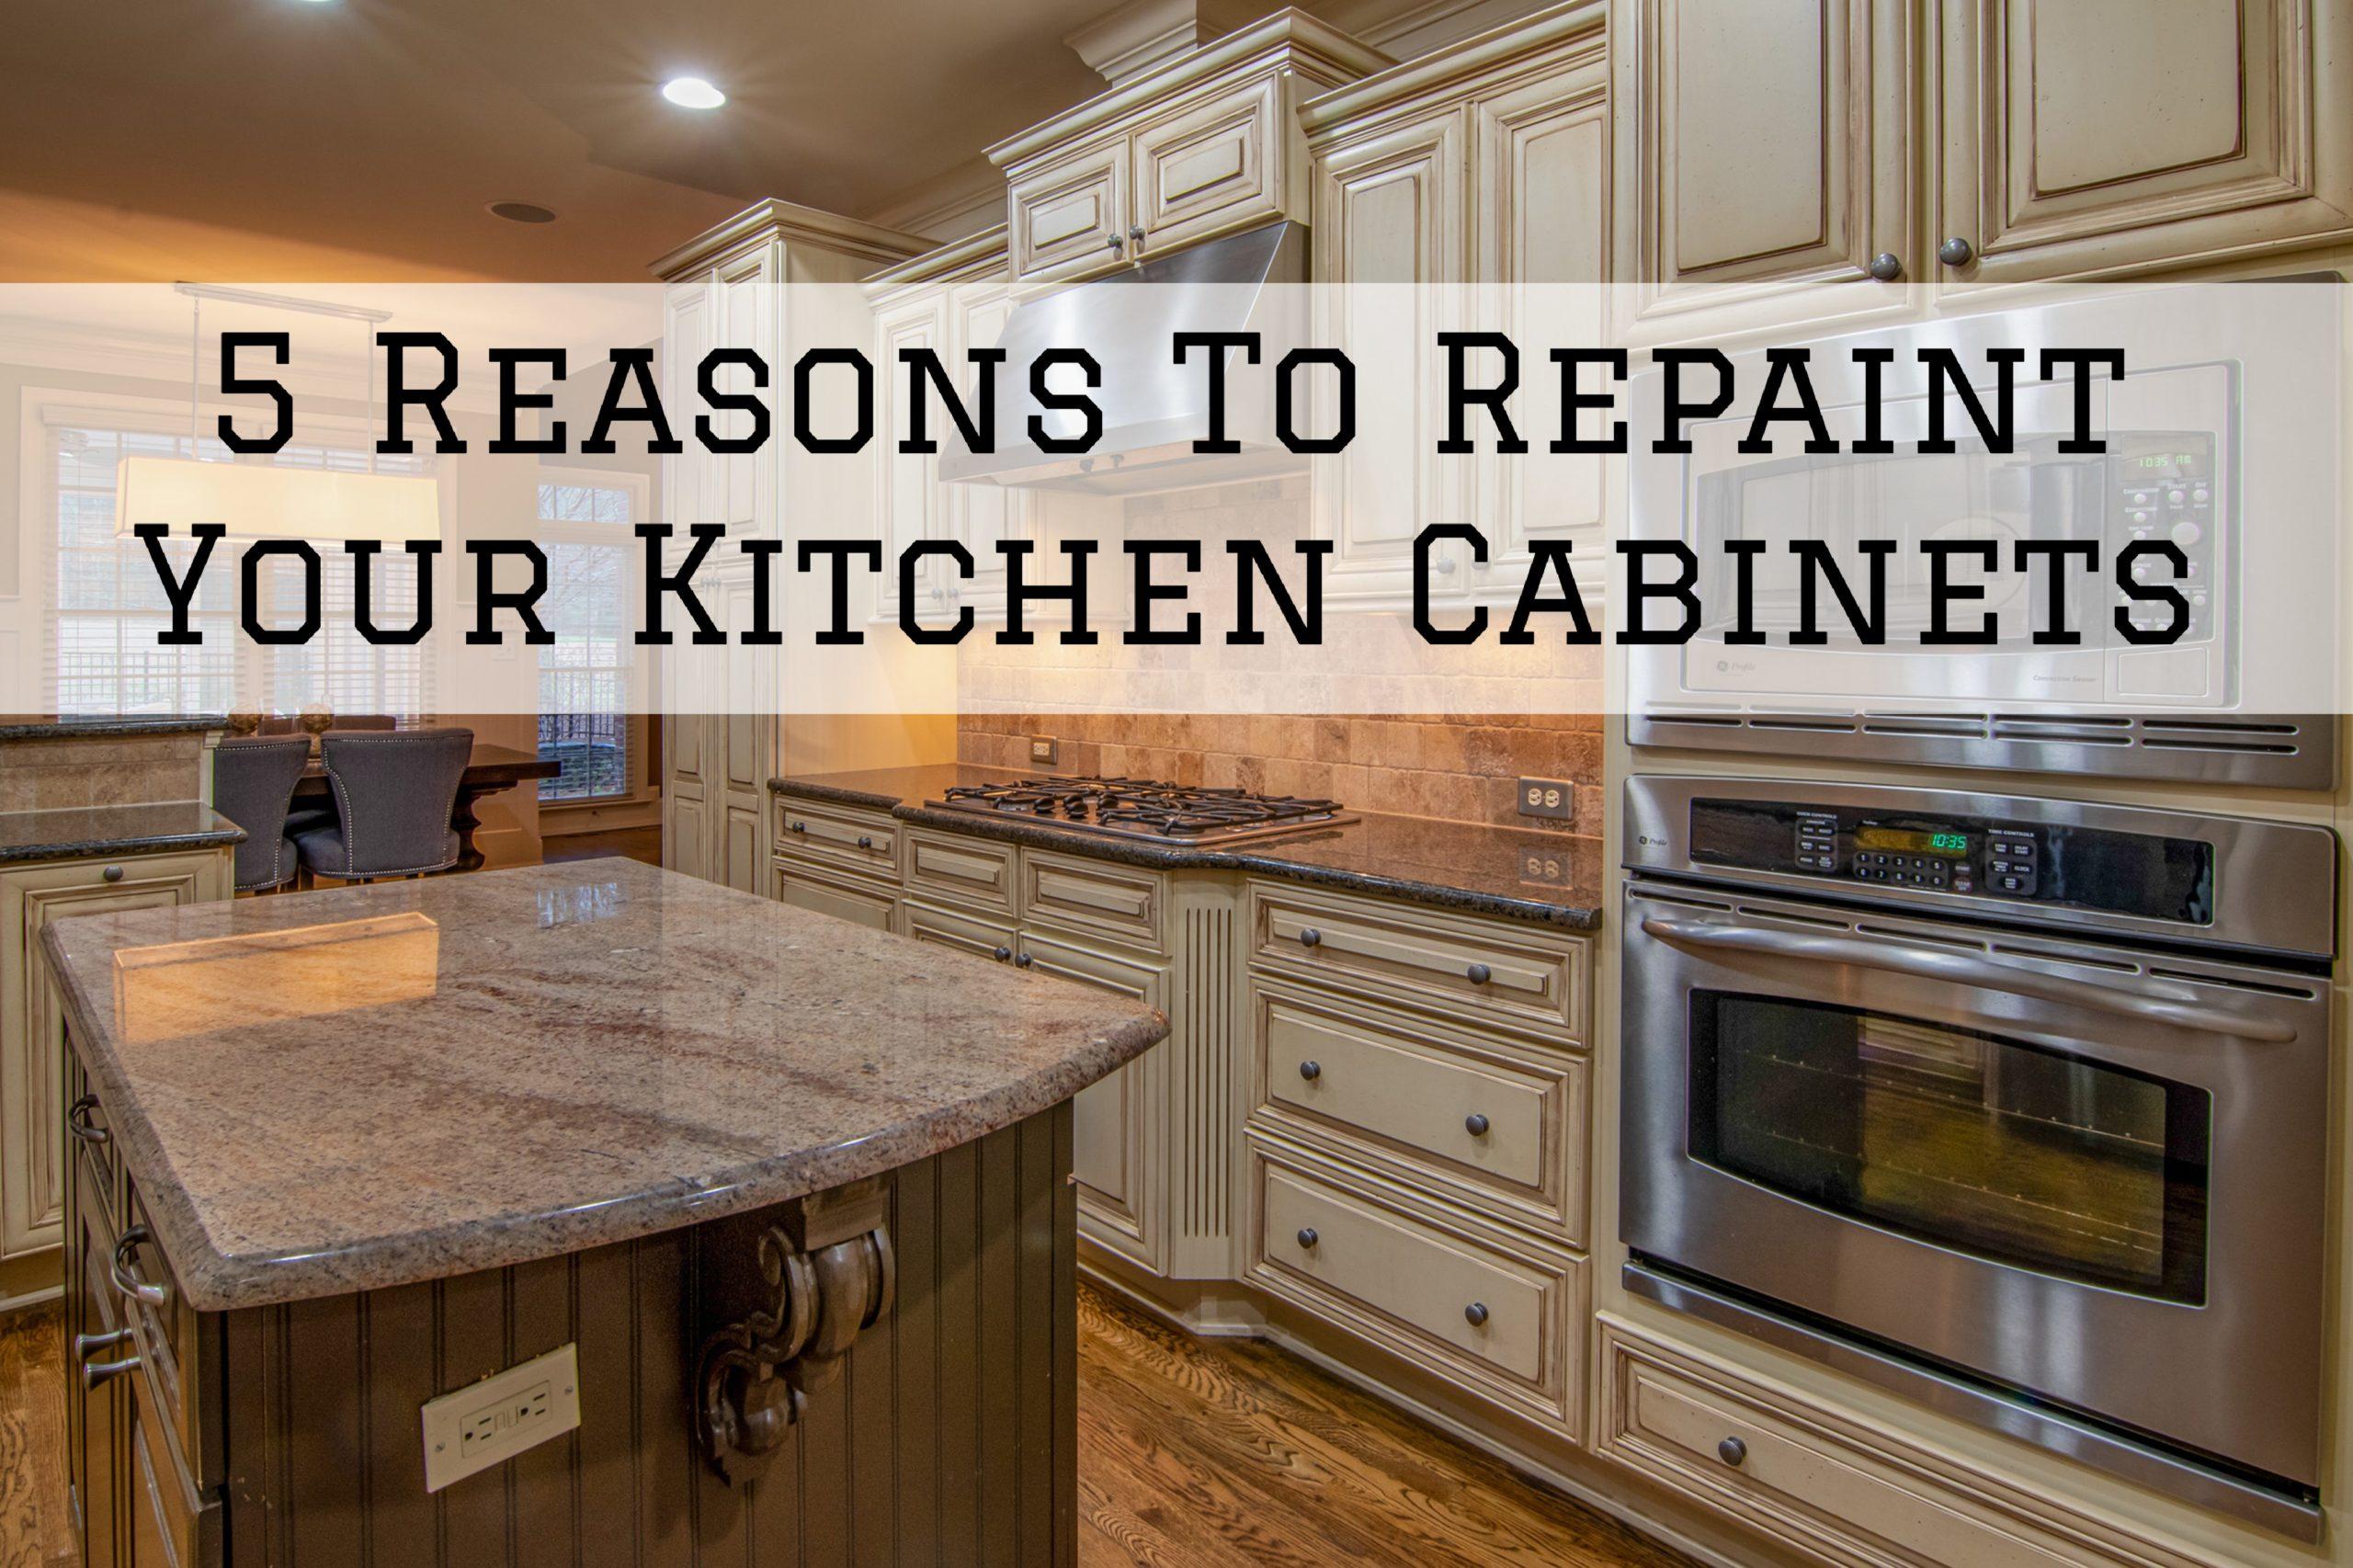 5 Reasons To Repaint Your Kitchen Cabinets in Omaha, NE